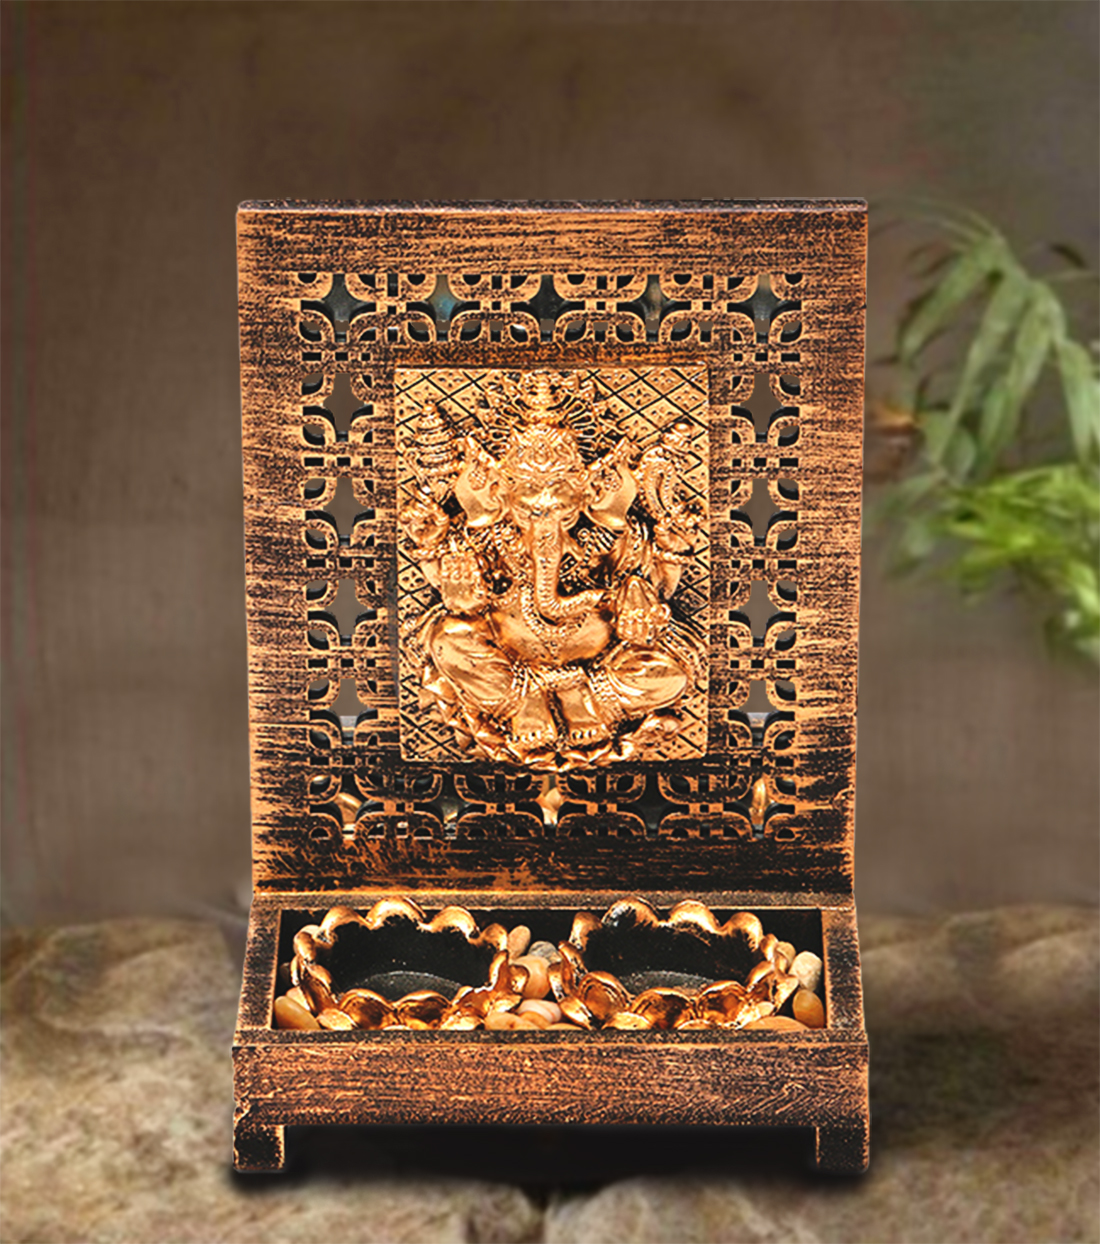 HomeTown Zahara Polyresin Ganesha Brushed Gold Polyresin Candle Holders in Brushed Gold Colour by HomeTown